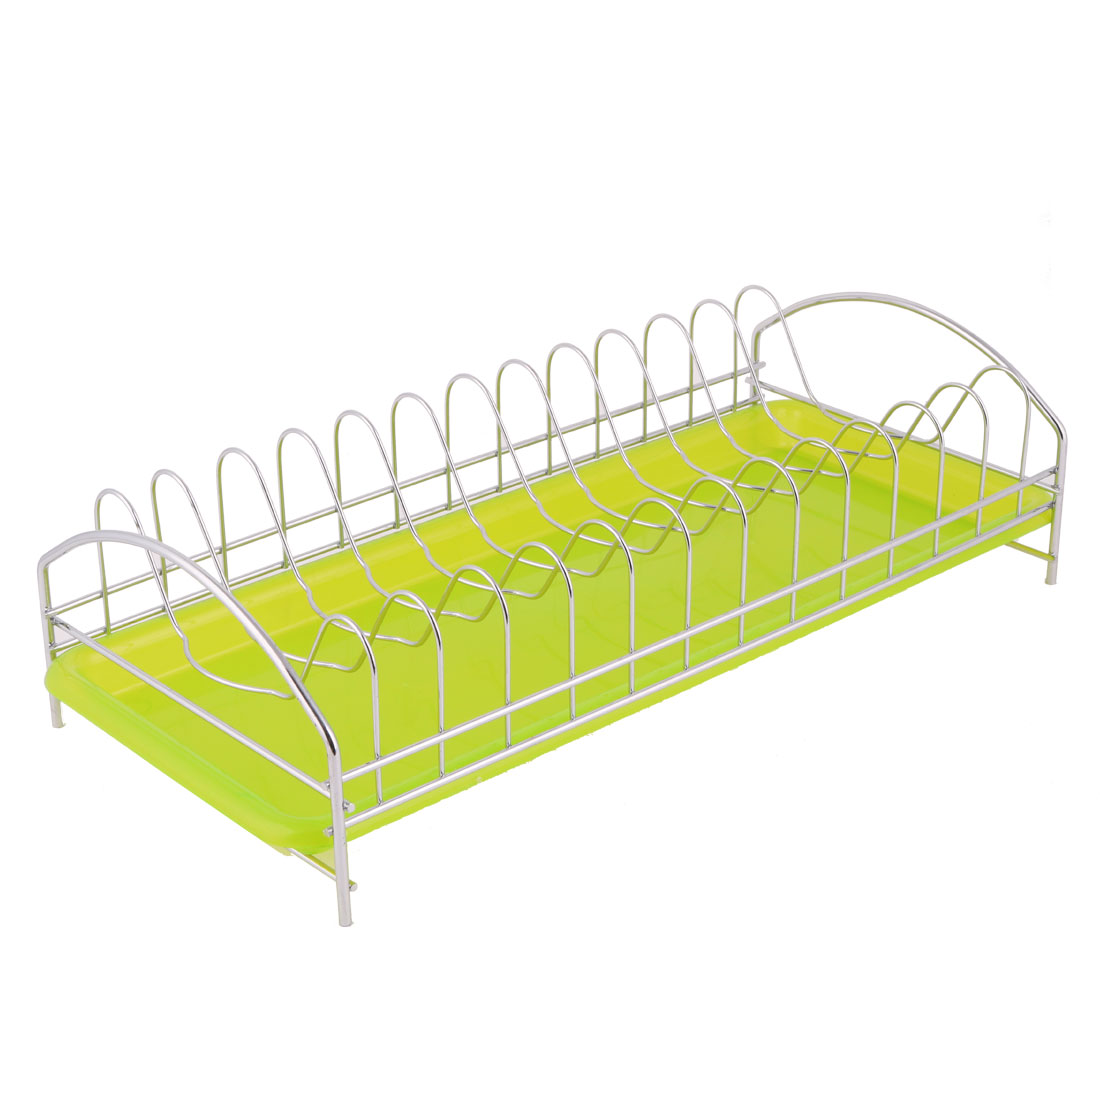 Household Kitchenware Tableware Fruit Vegetable Dish Plate Drainer Drying Rack Green